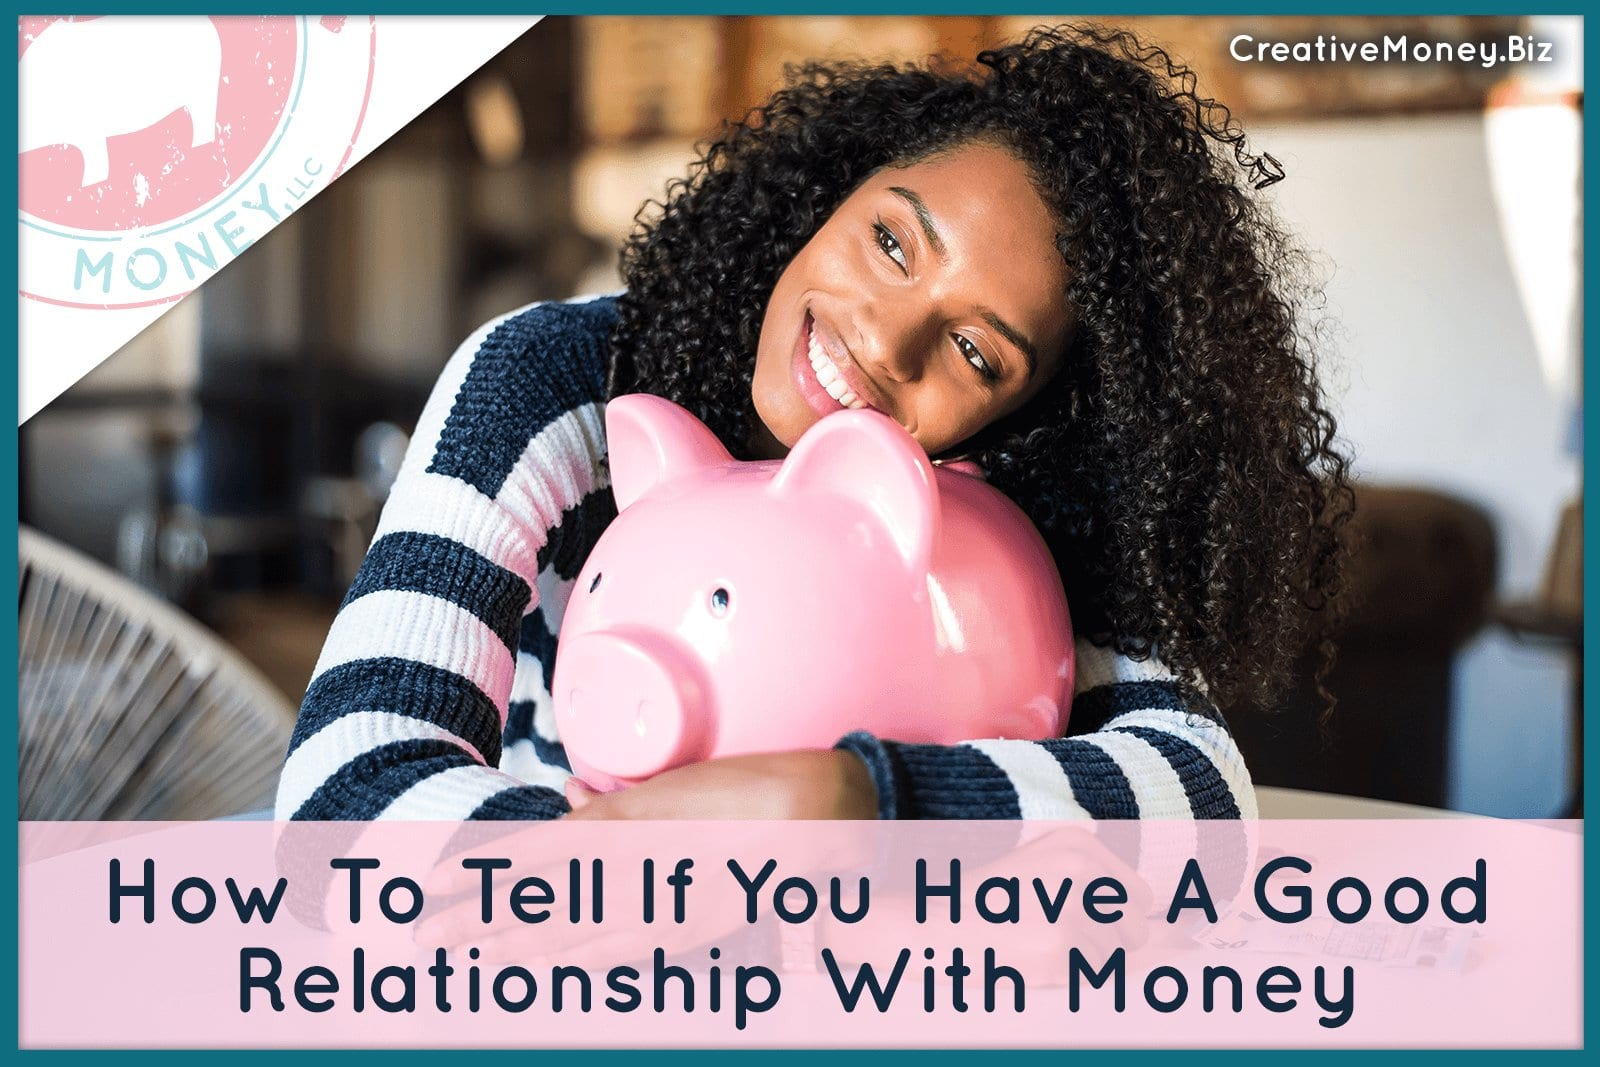 How To Tell If You Have A Good Relationship with Money